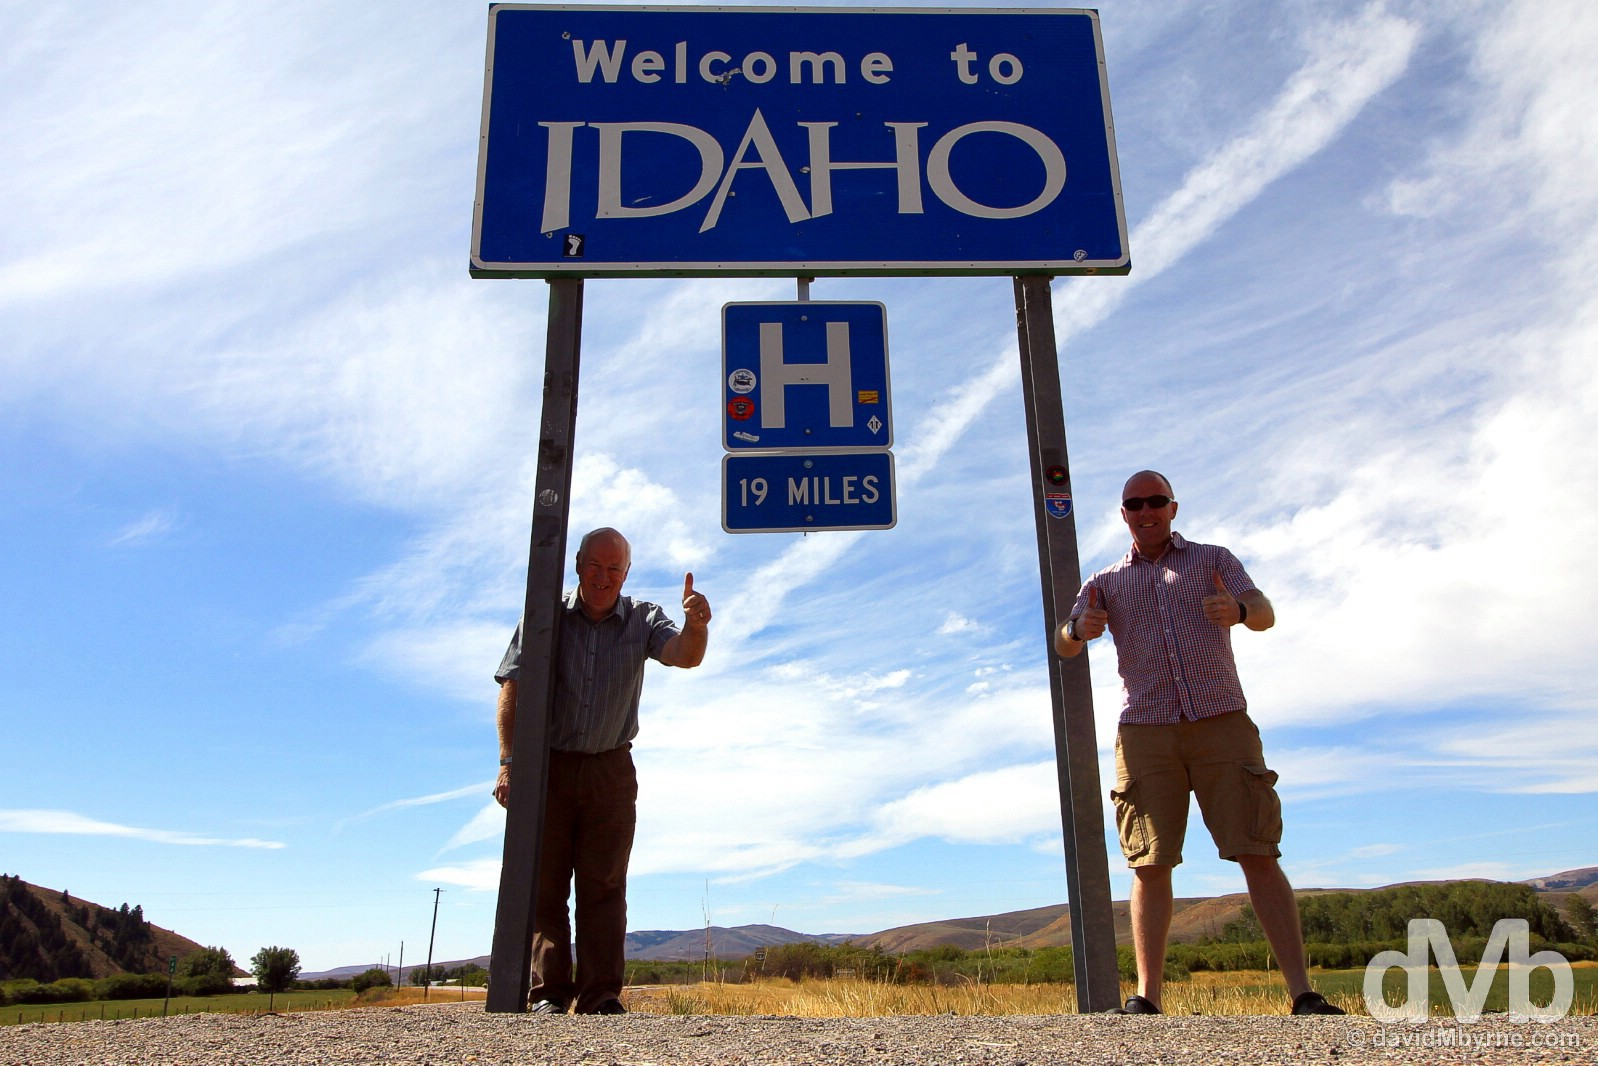 At the Wyoming - Idaho state line on U.S. Highway 89 in western Wyoming, USA. September 6, 2016.